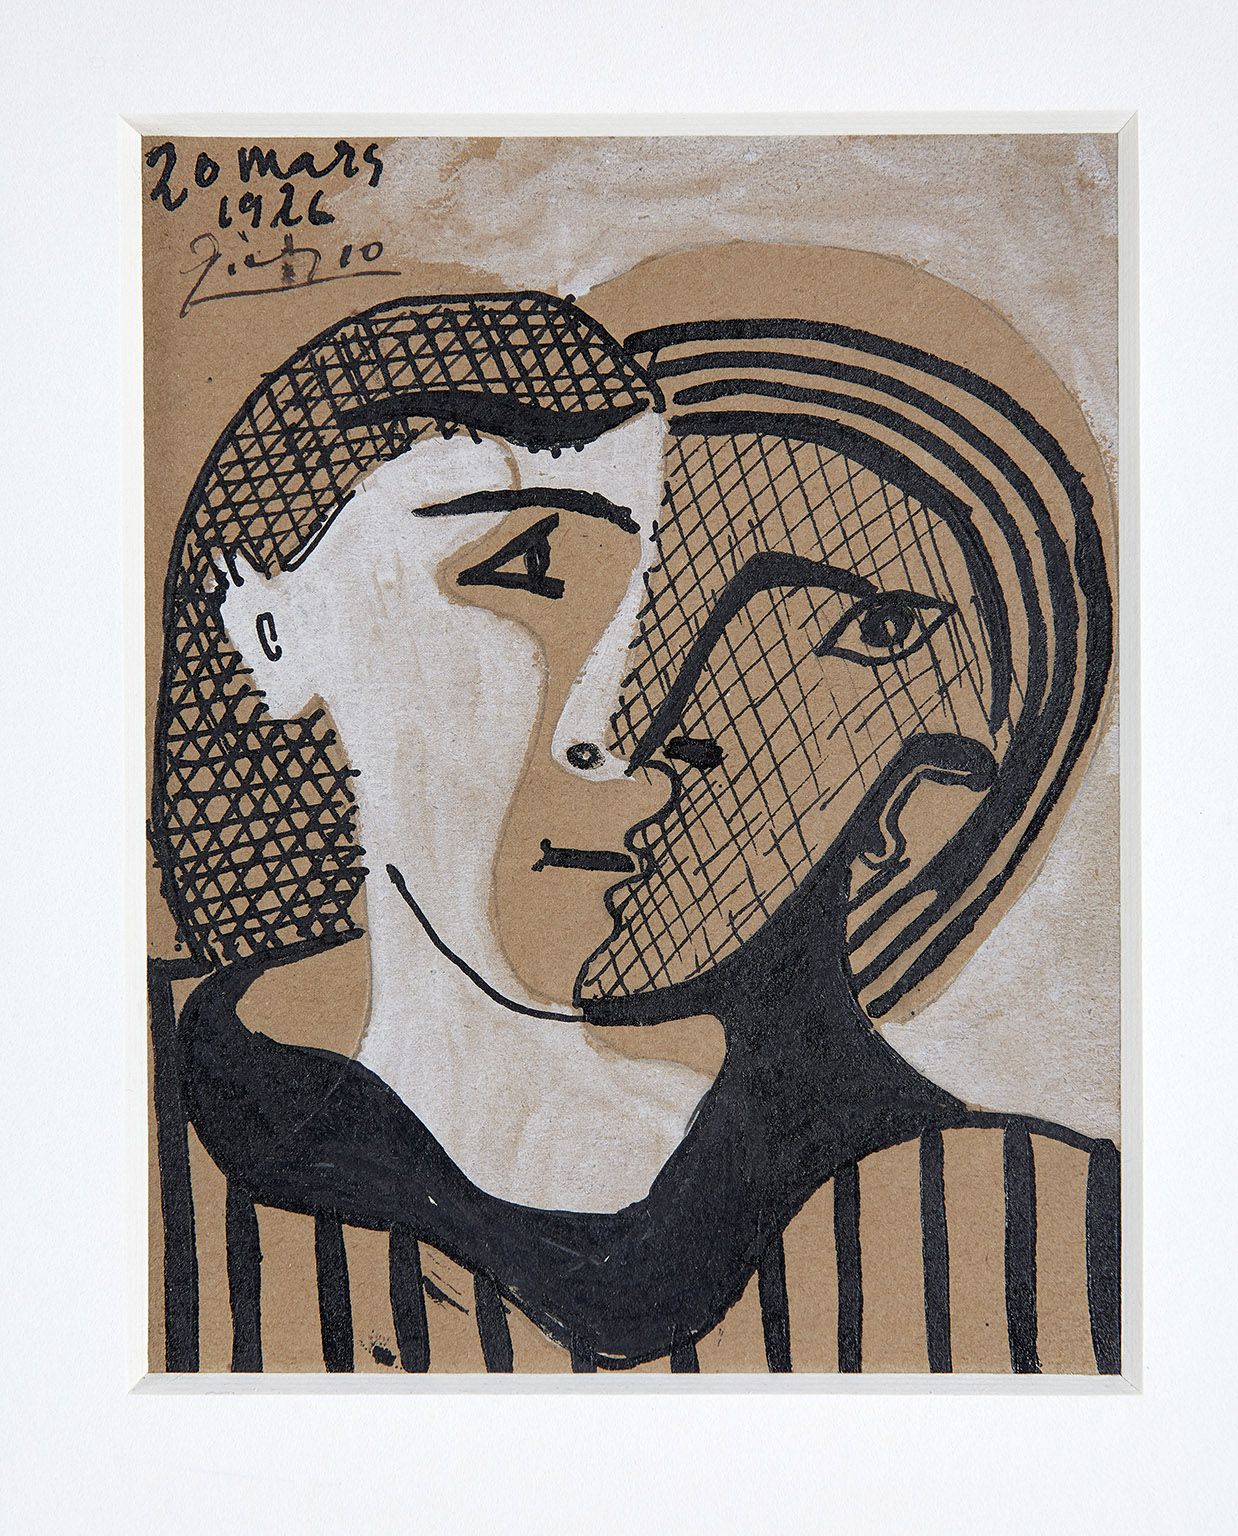 Pablo Picasso, Head of a Woman, 1926